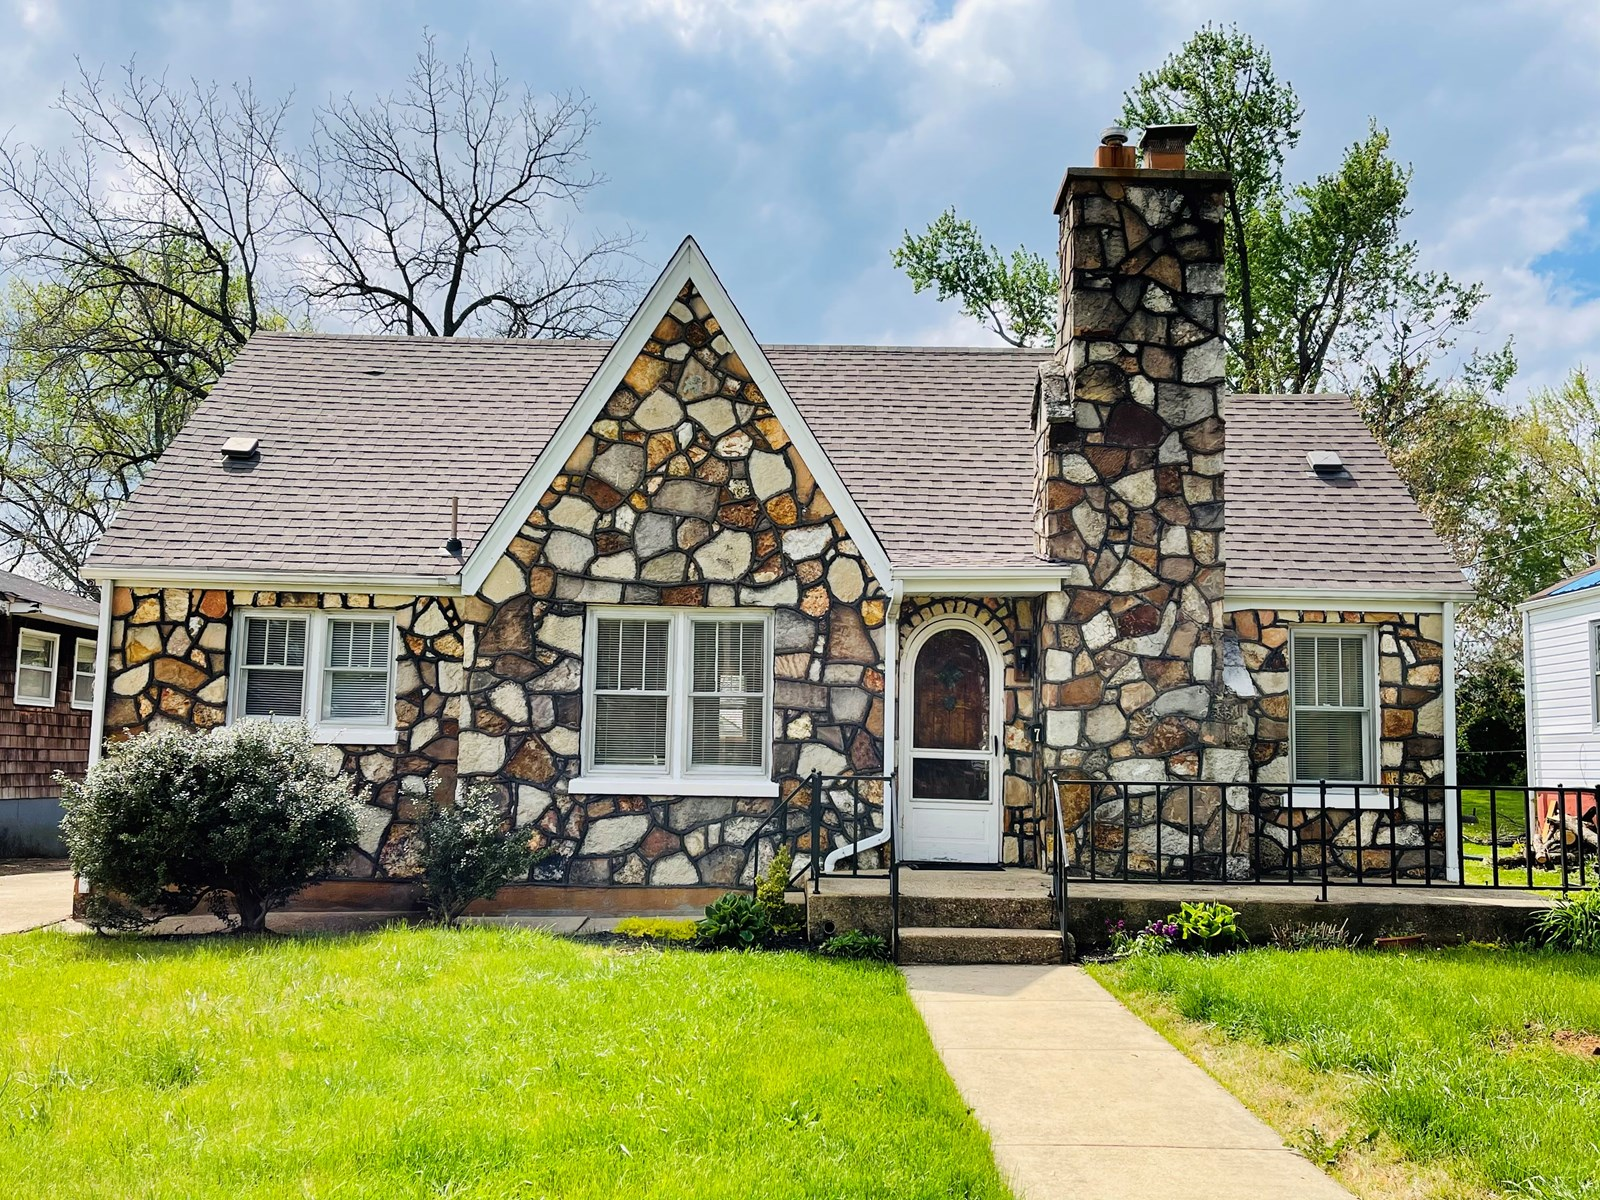 Charming 3 bedroom Cottage home in Salem with updates!